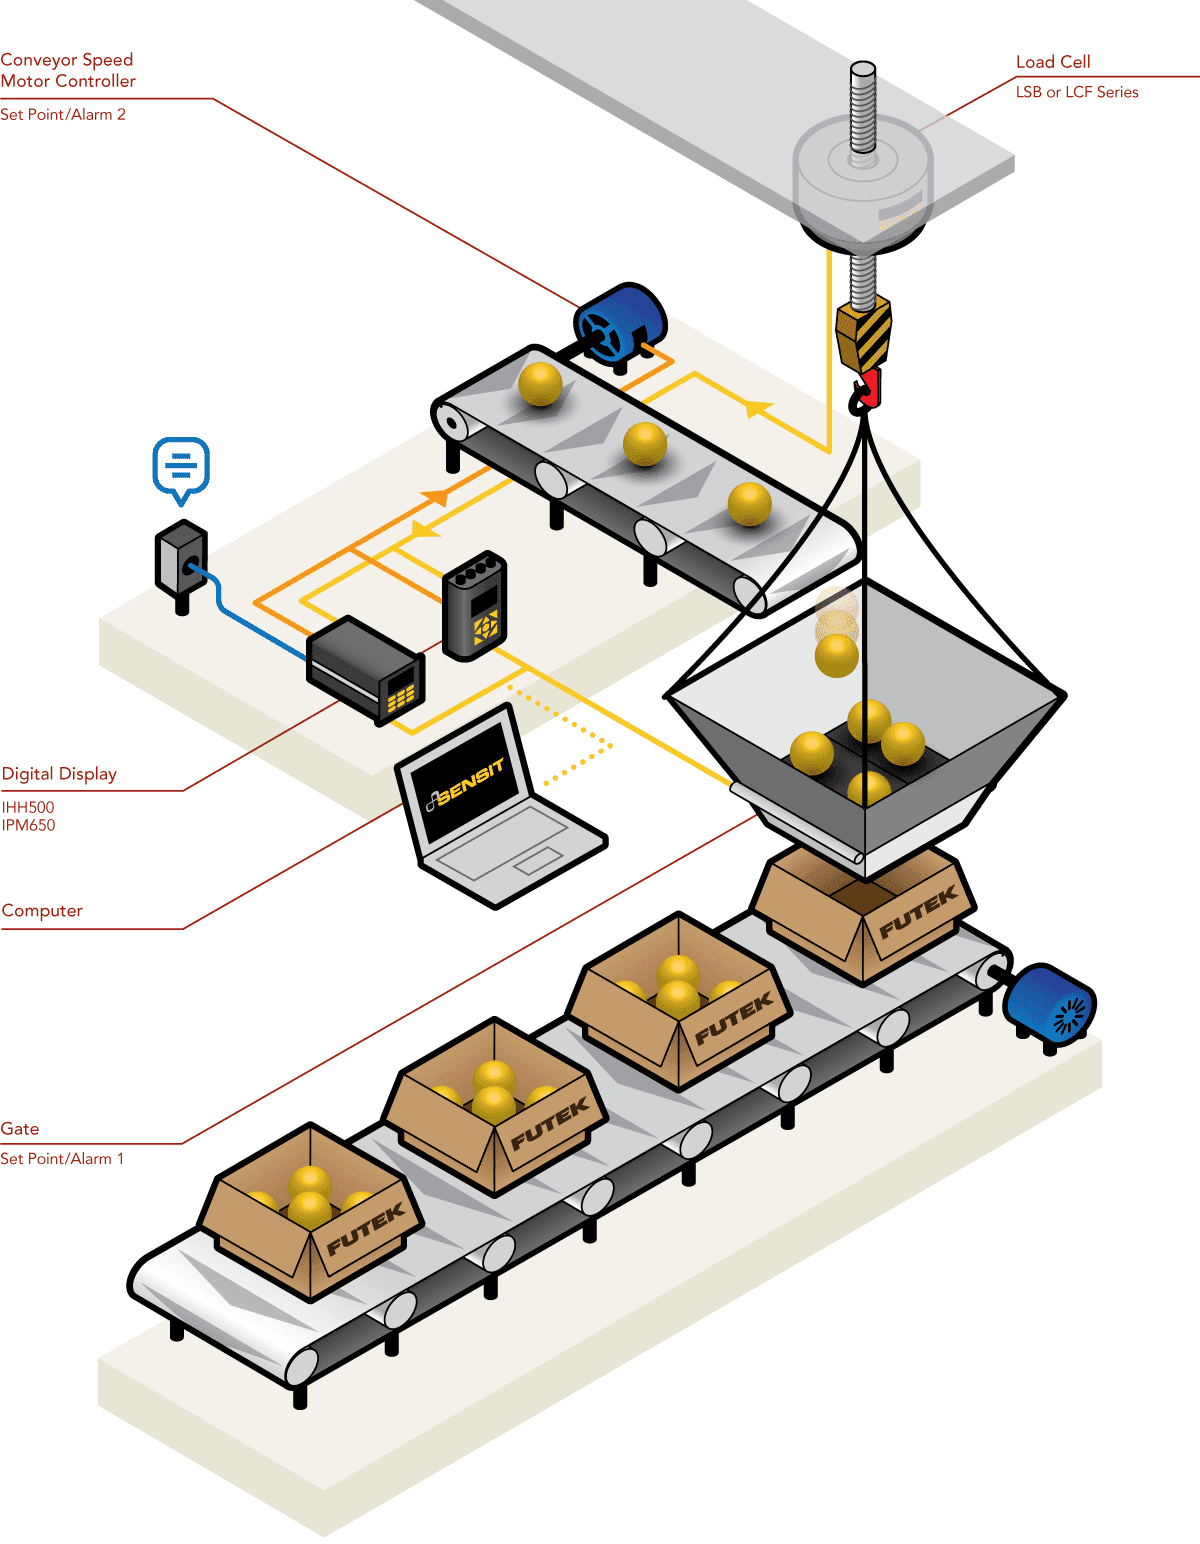 automation load cells